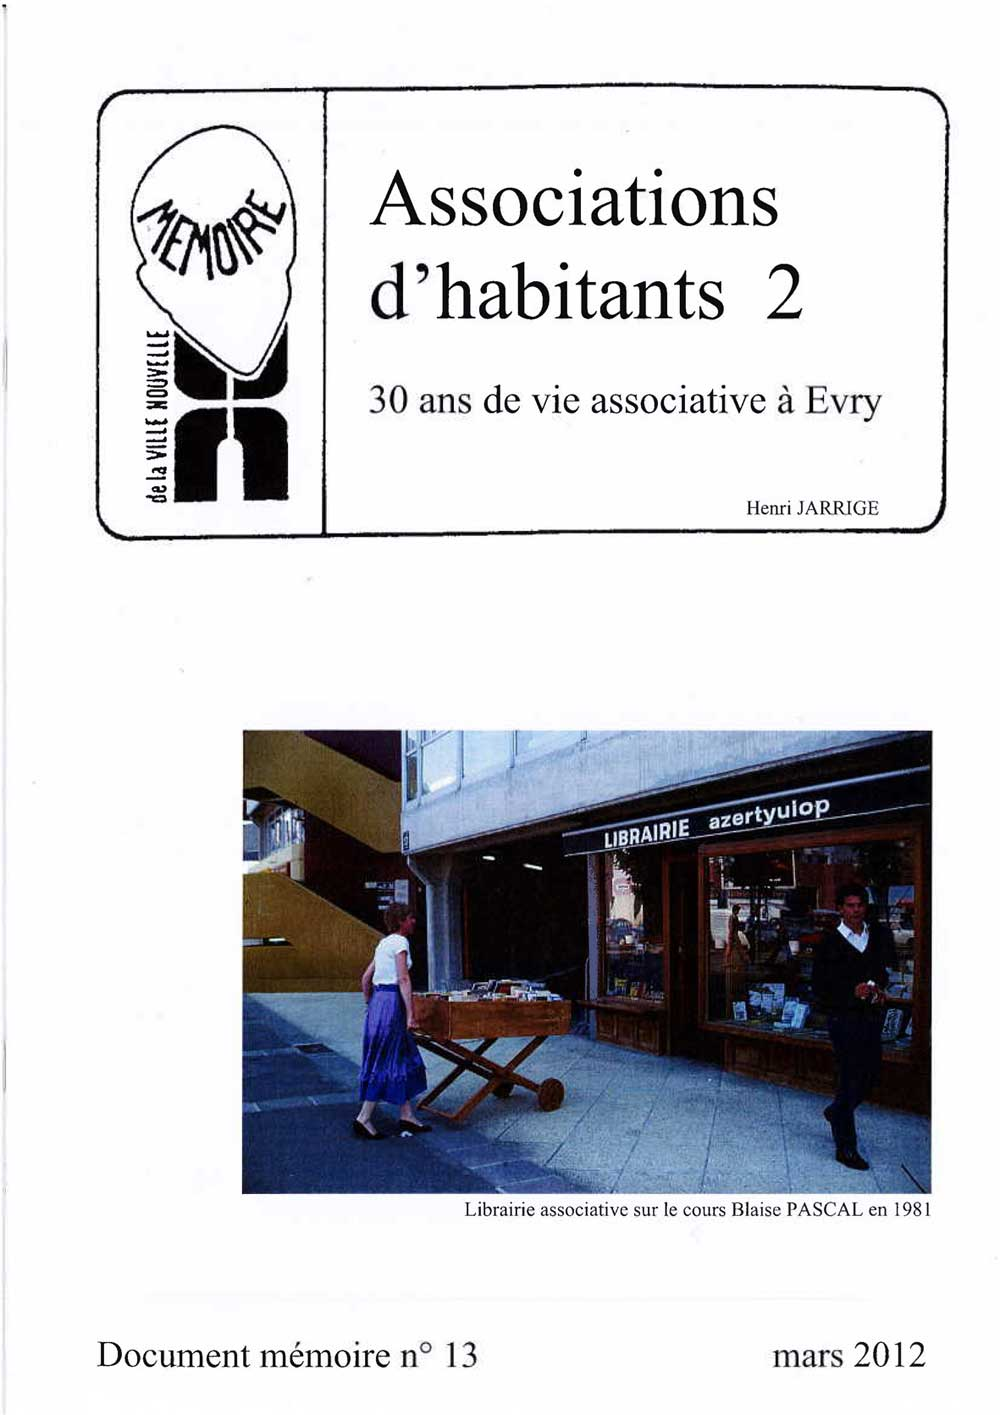 Document mémoire n°13 (2012)